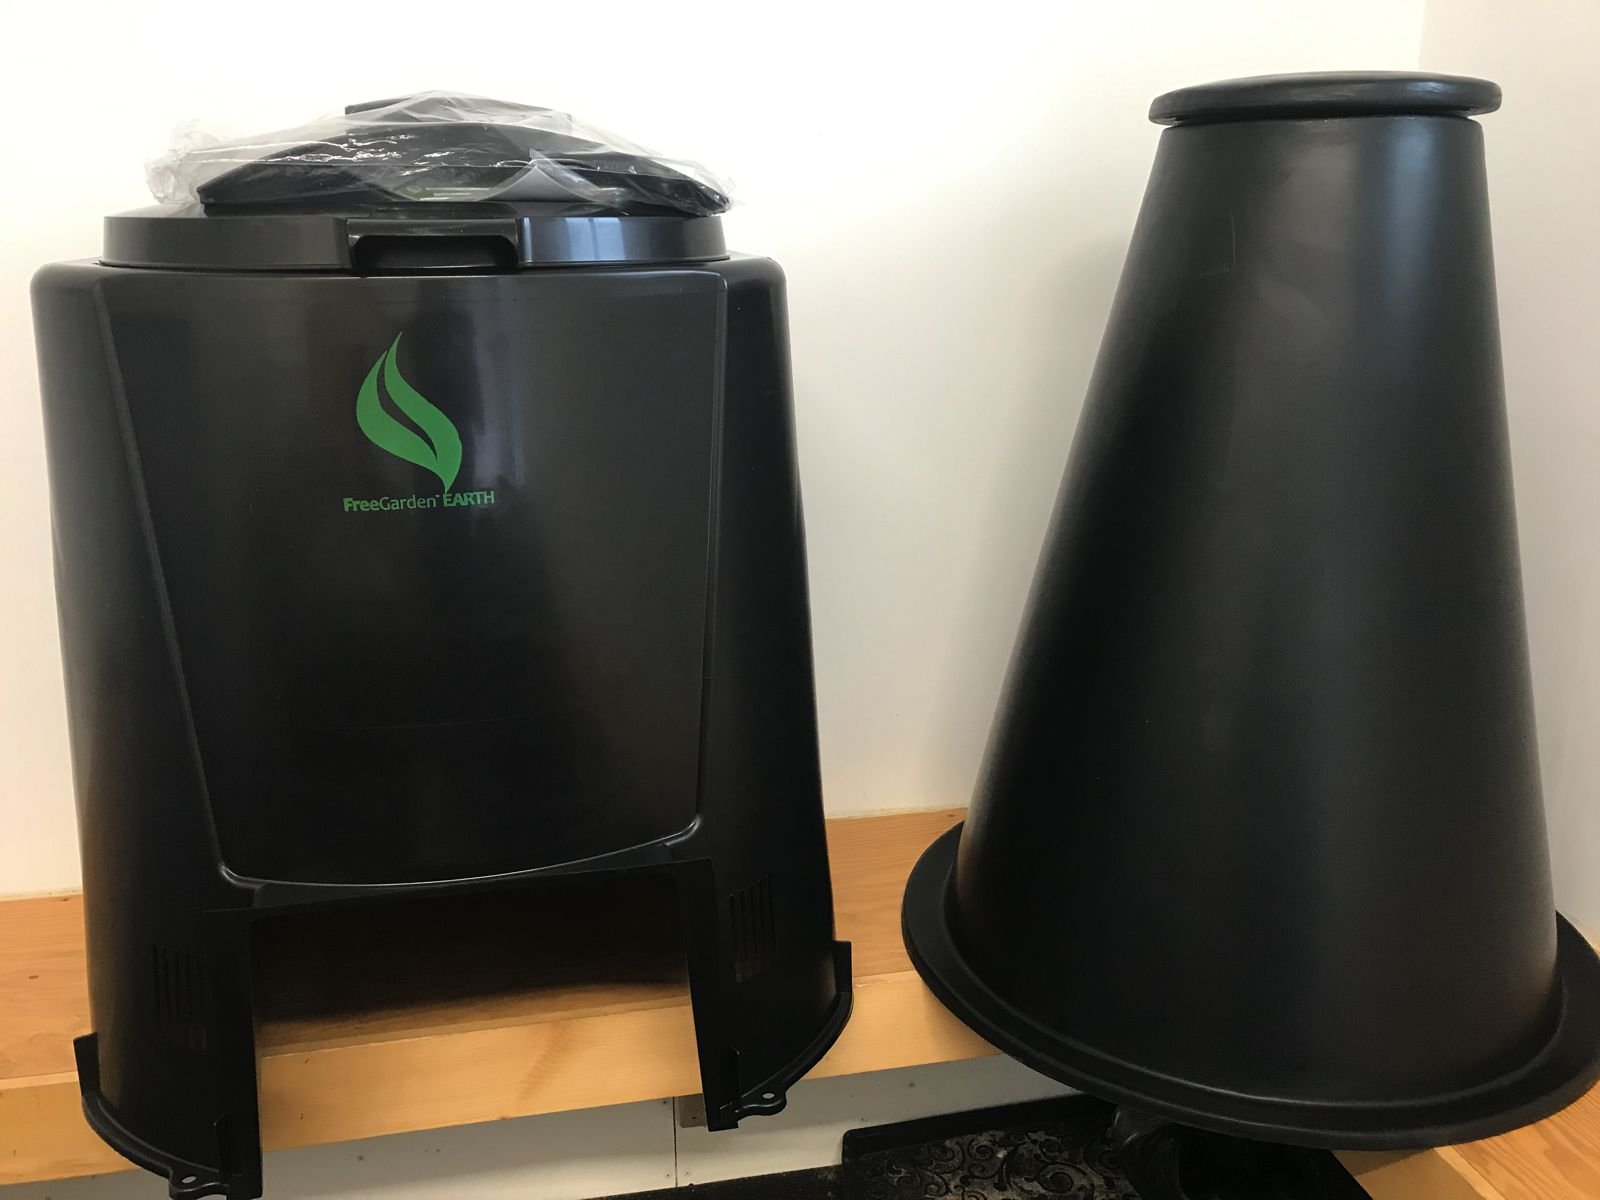 Comparison image showing composter and digester side by side.